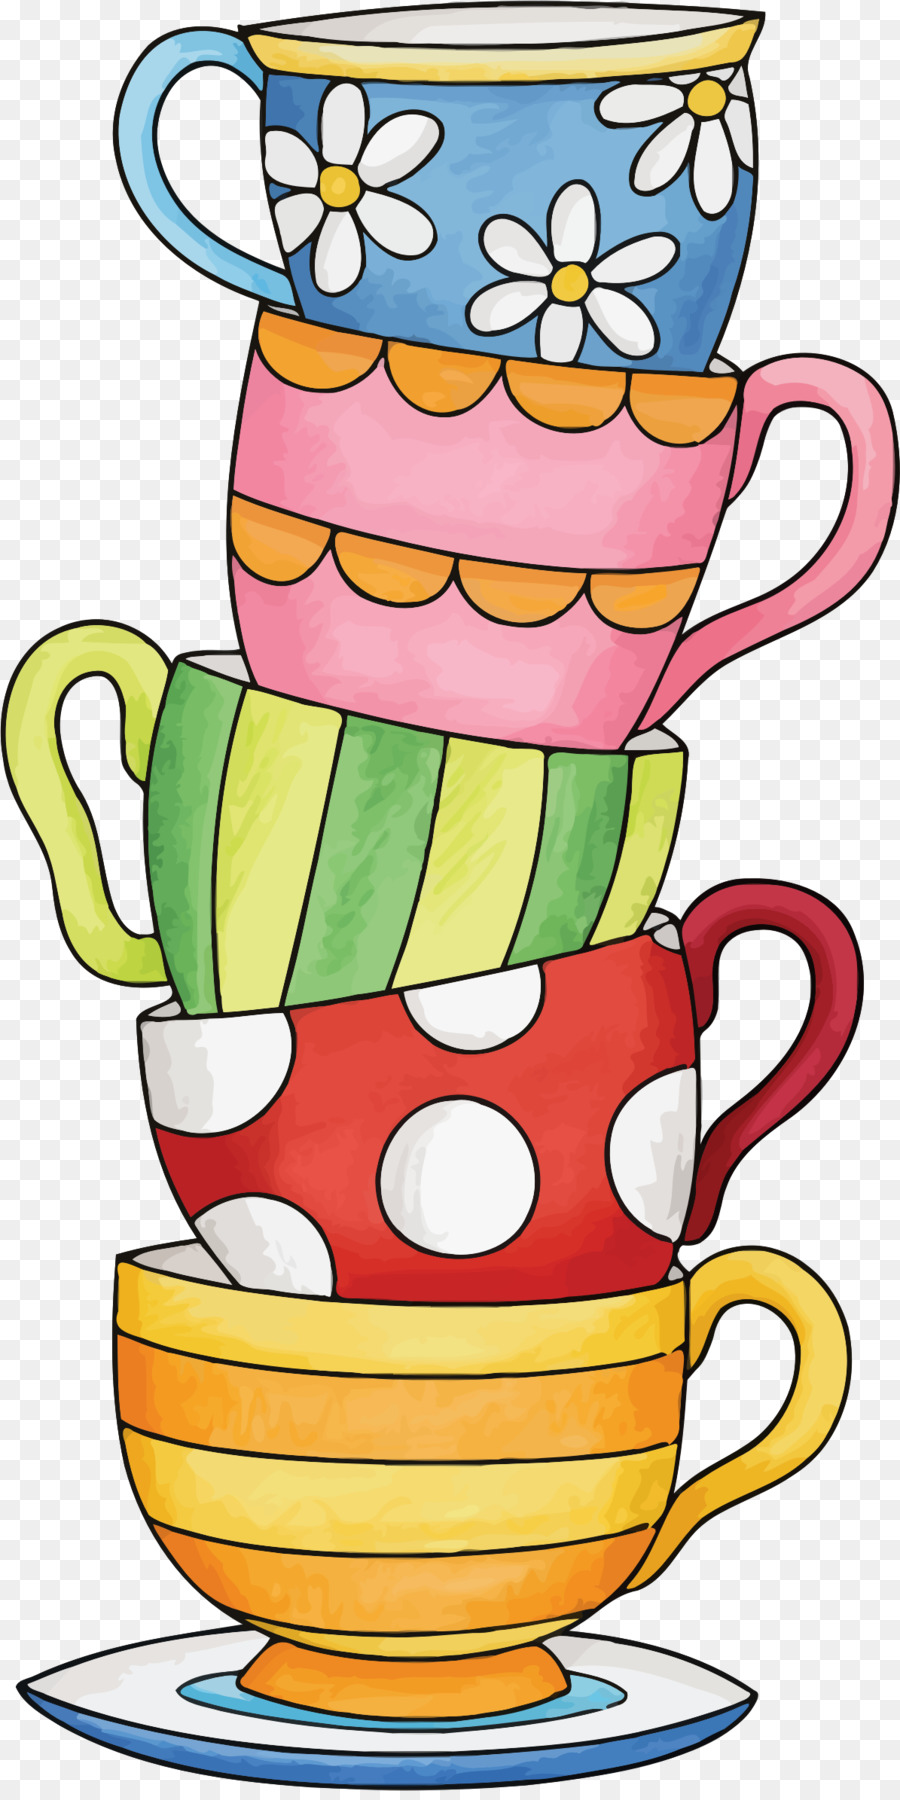 vector royalty free stock Cups clipart. Cup of coffee tea.